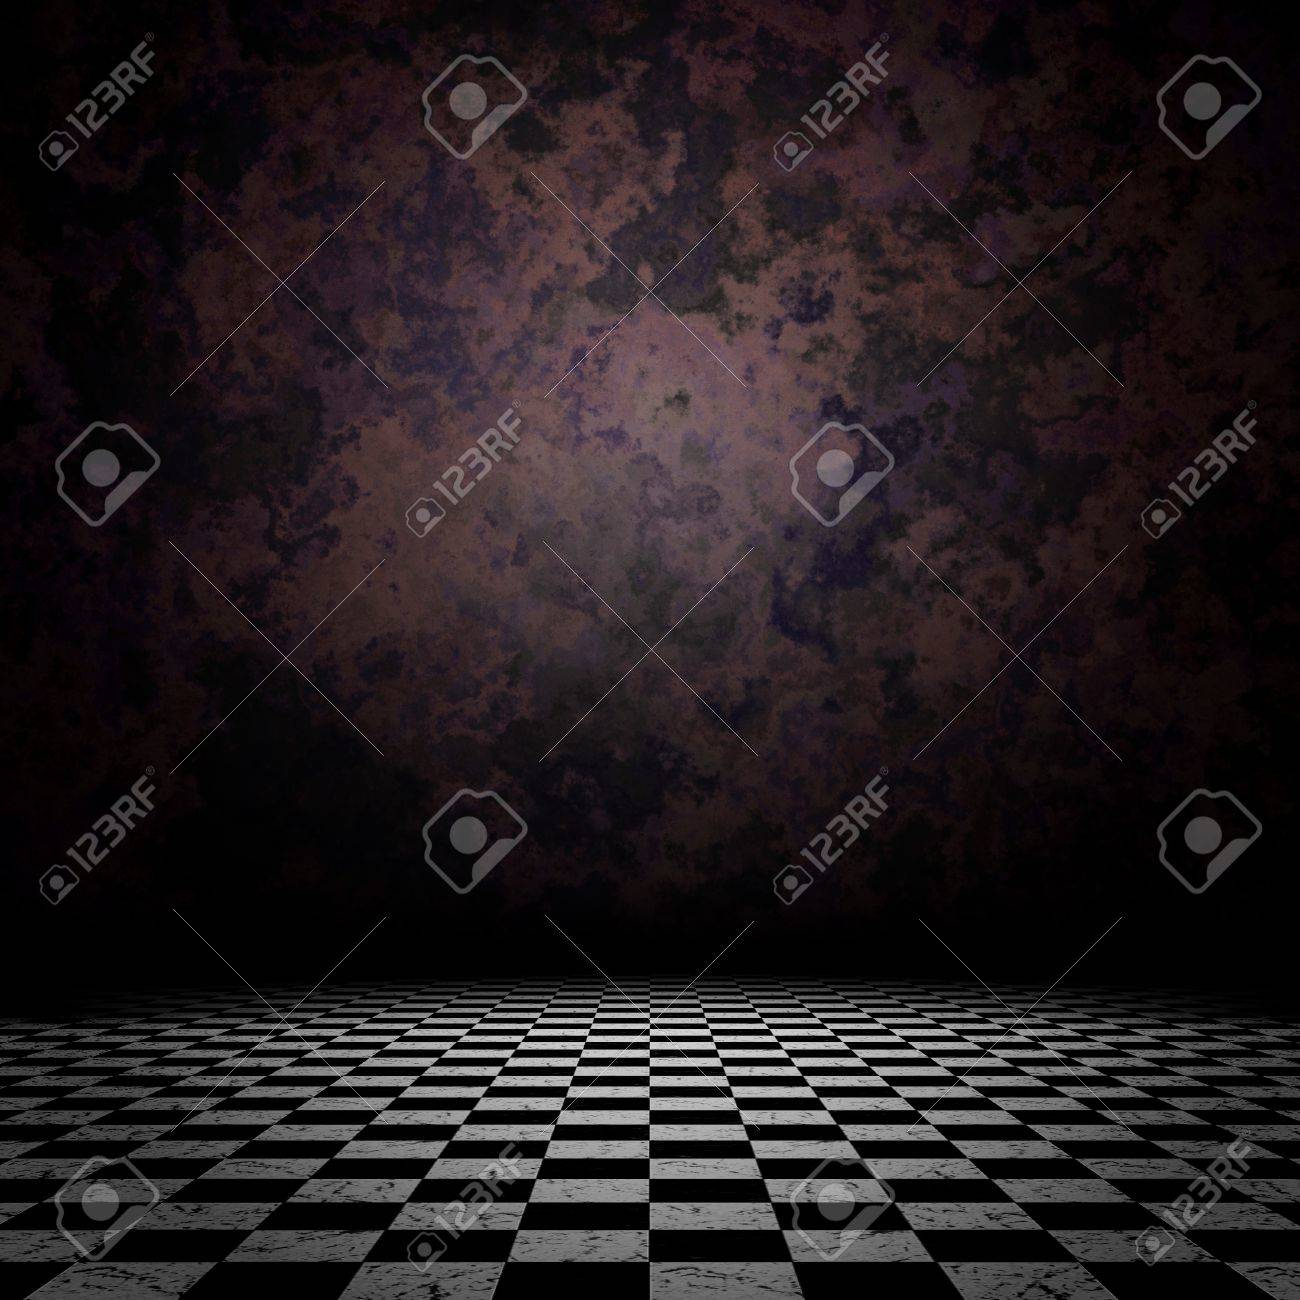 Grunge room interior with old wall and checkered floor background. Stock Photo - 19059740